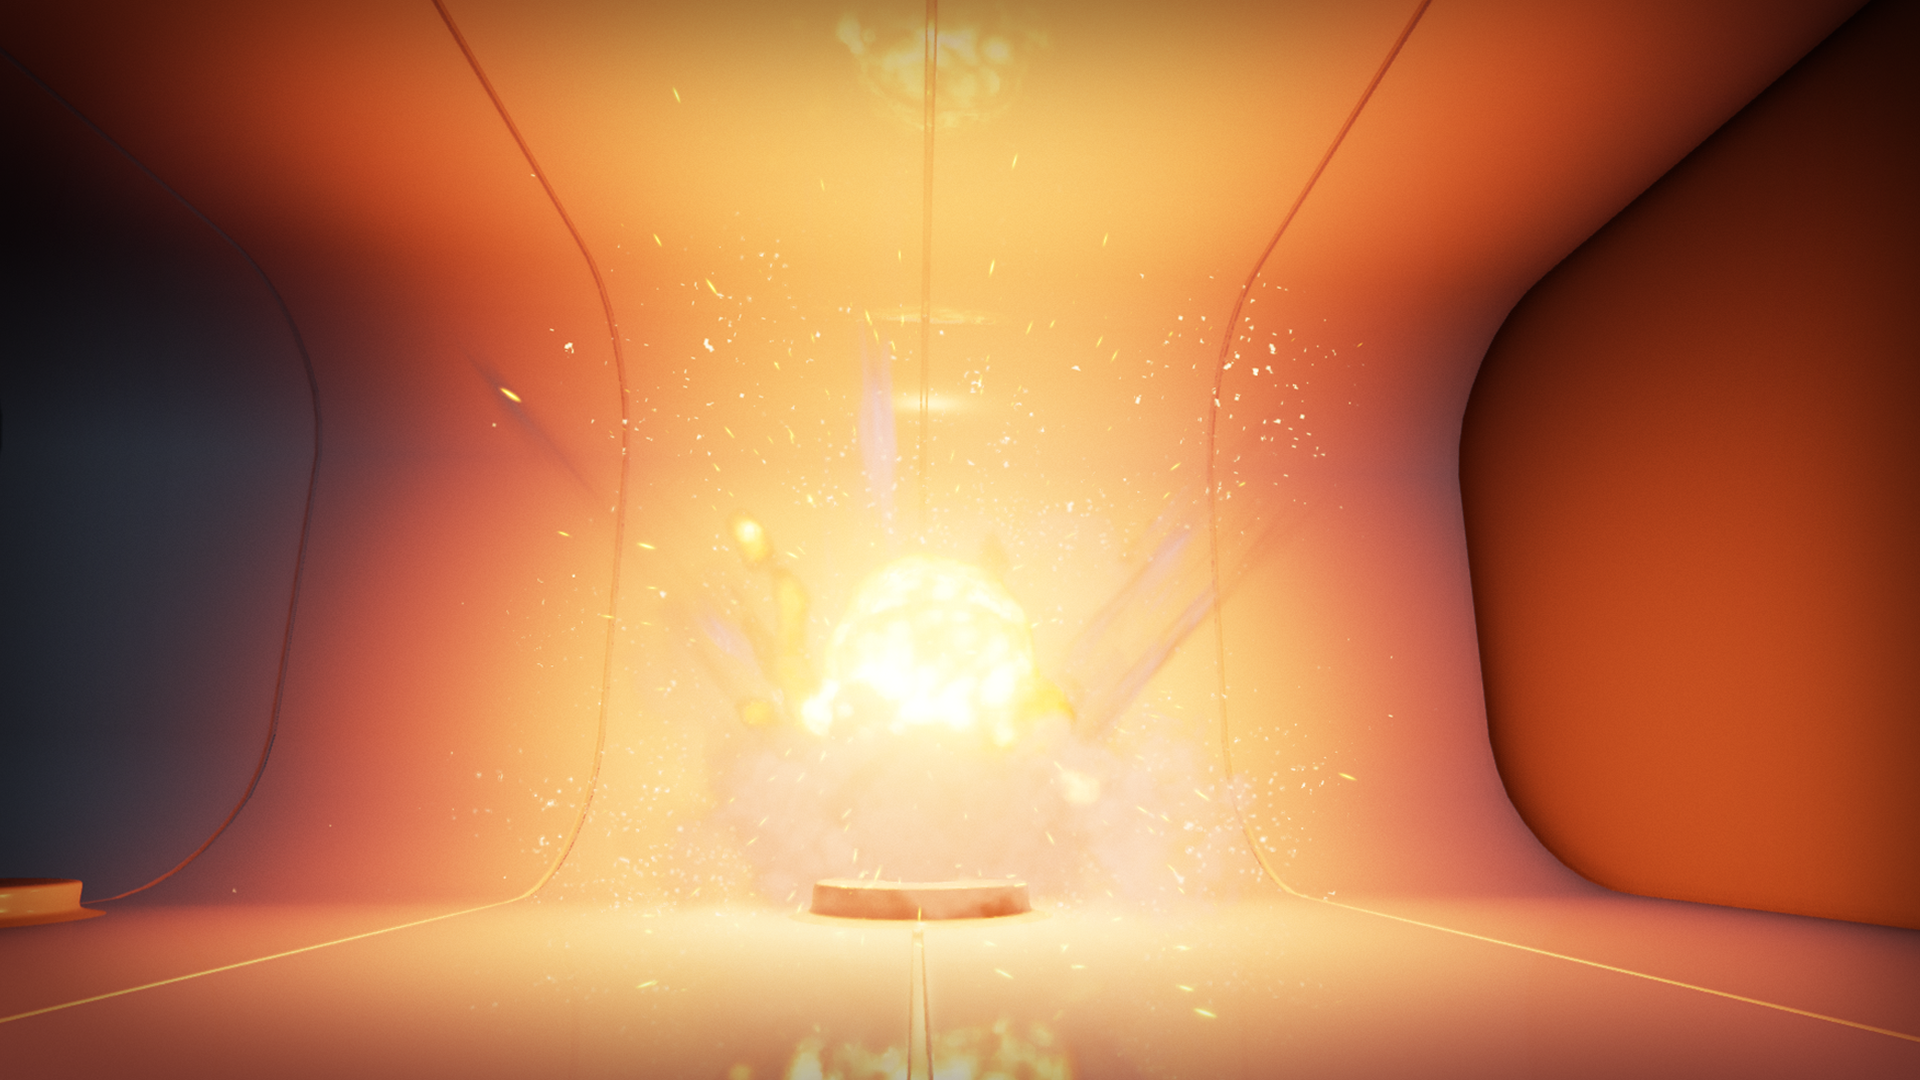 how to create particle emitter unreal engine 4